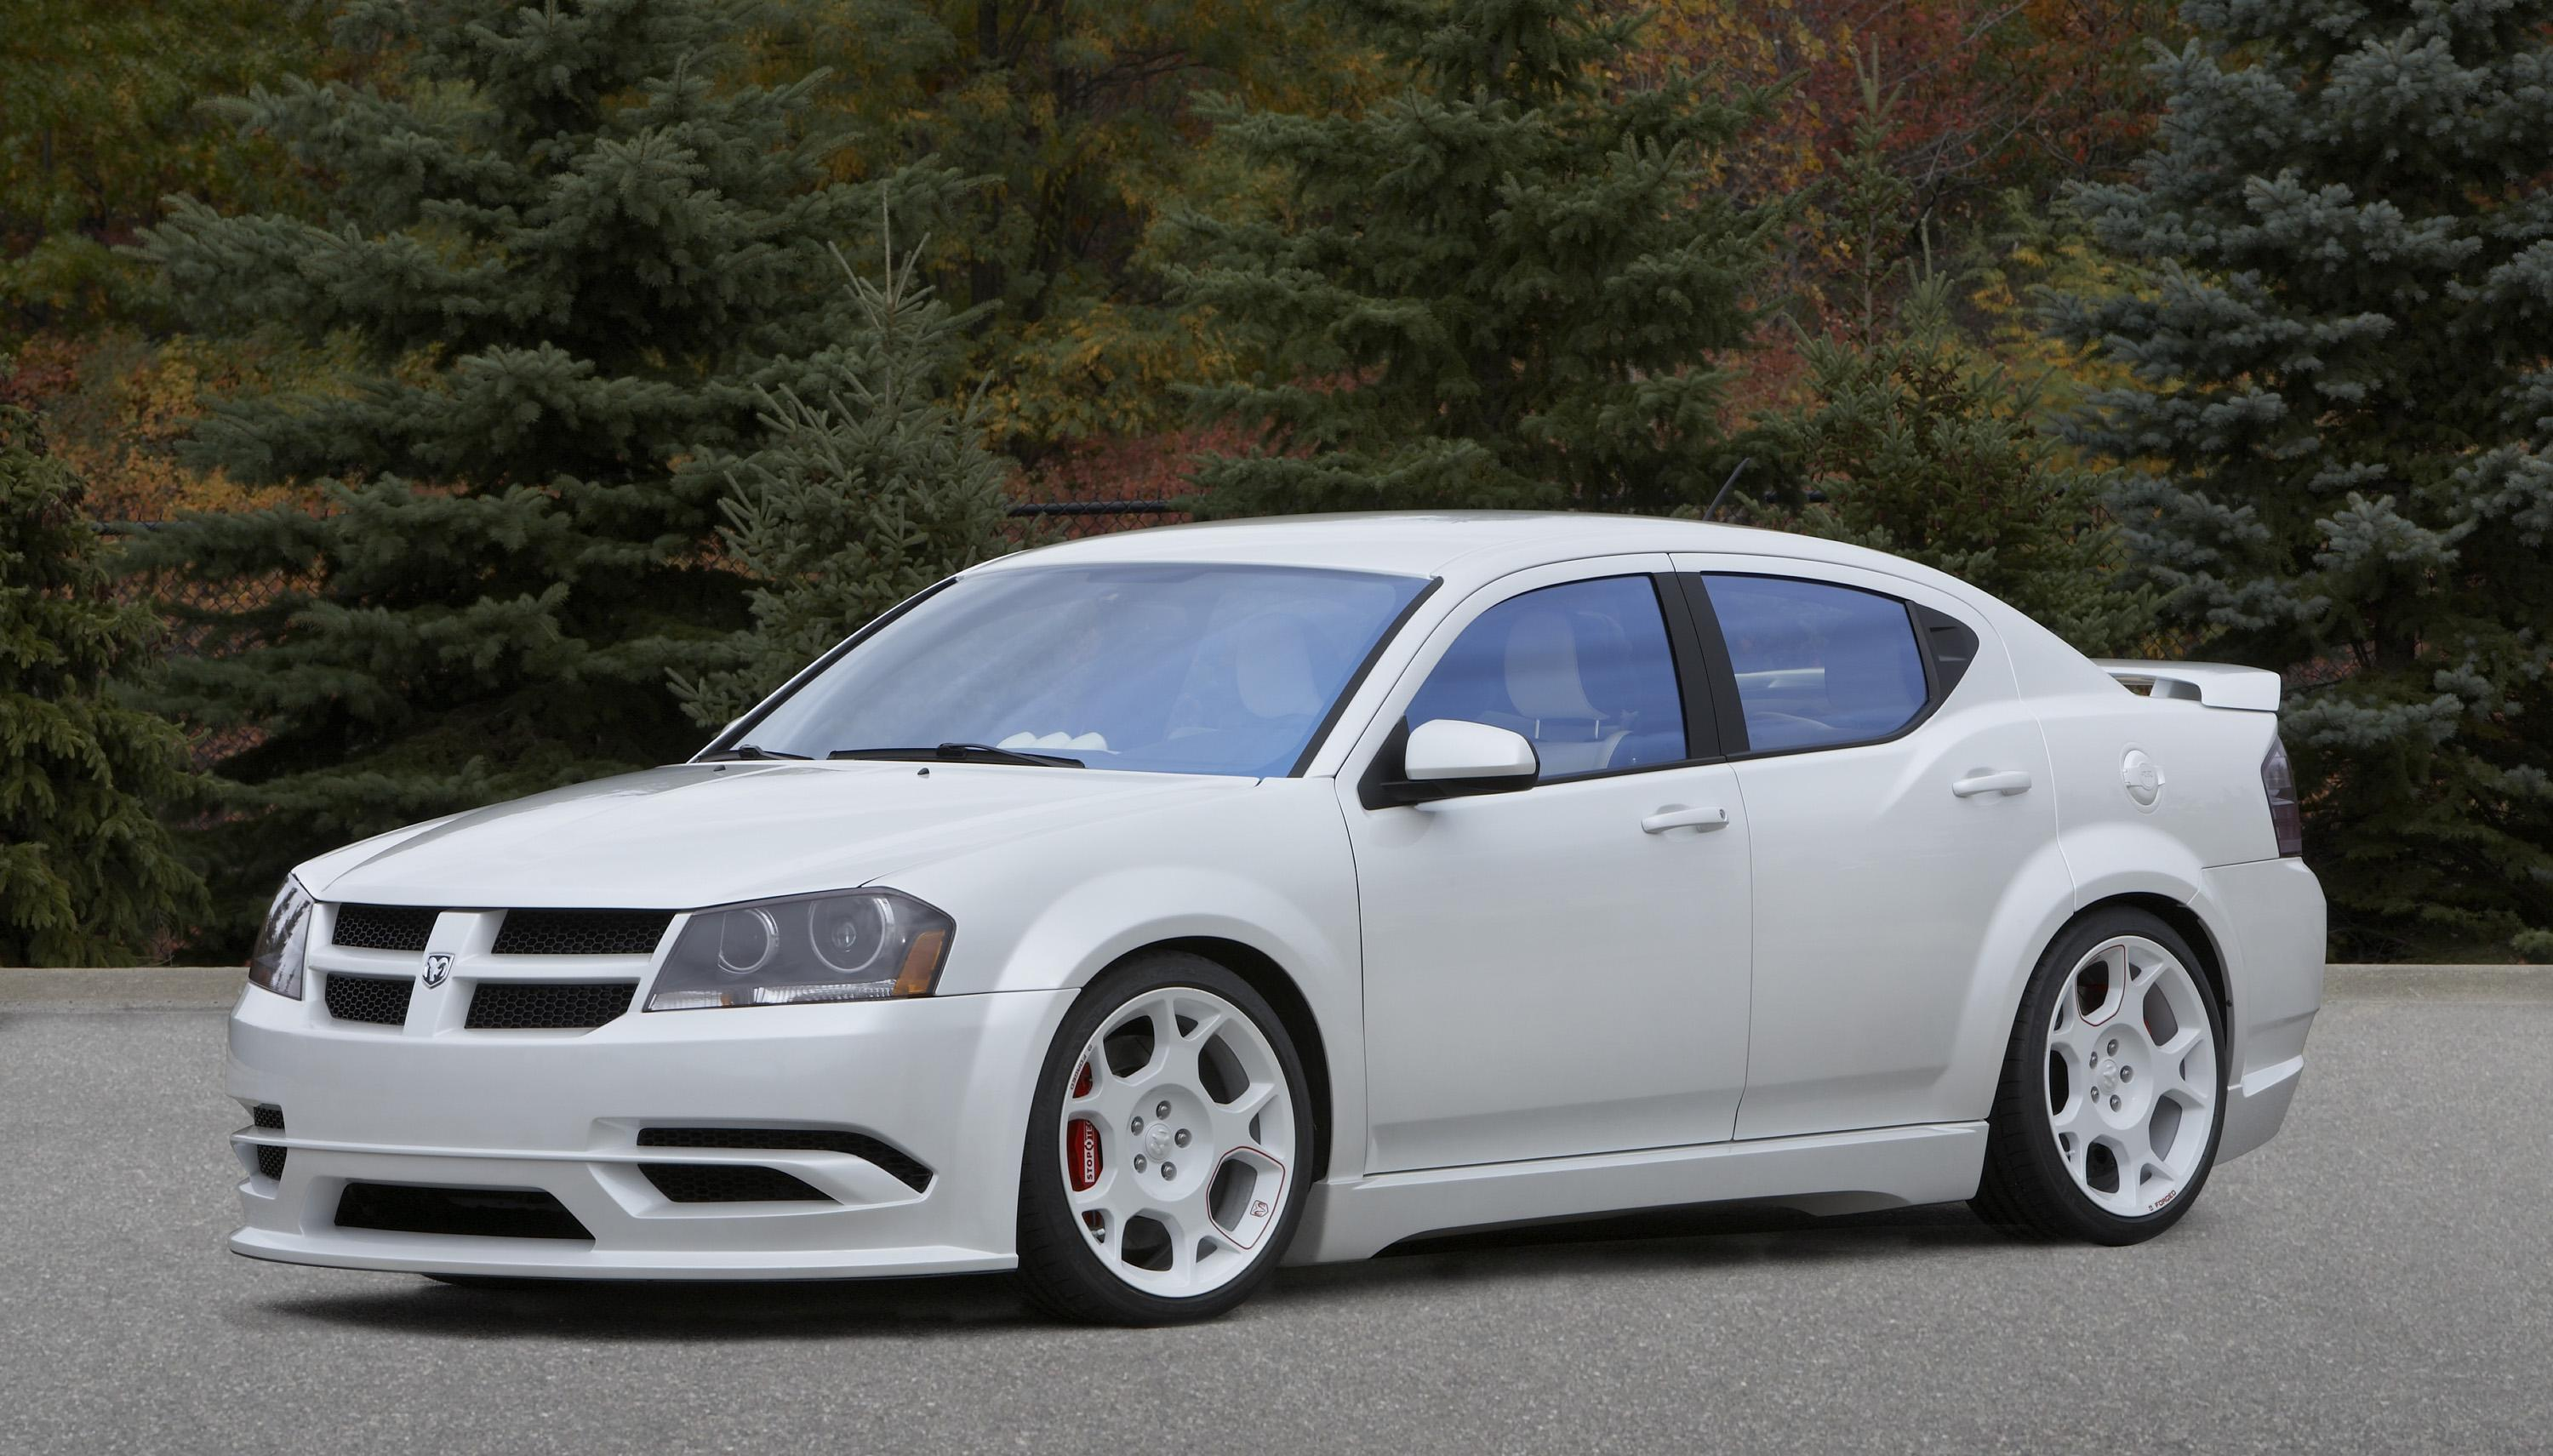 Maxresdefault together with Pauls Fairlanegt Int besides Hqdefault besides Scat Pack Tail Band Grande besides Charger Rally Stripe Grande. on dodge avenger